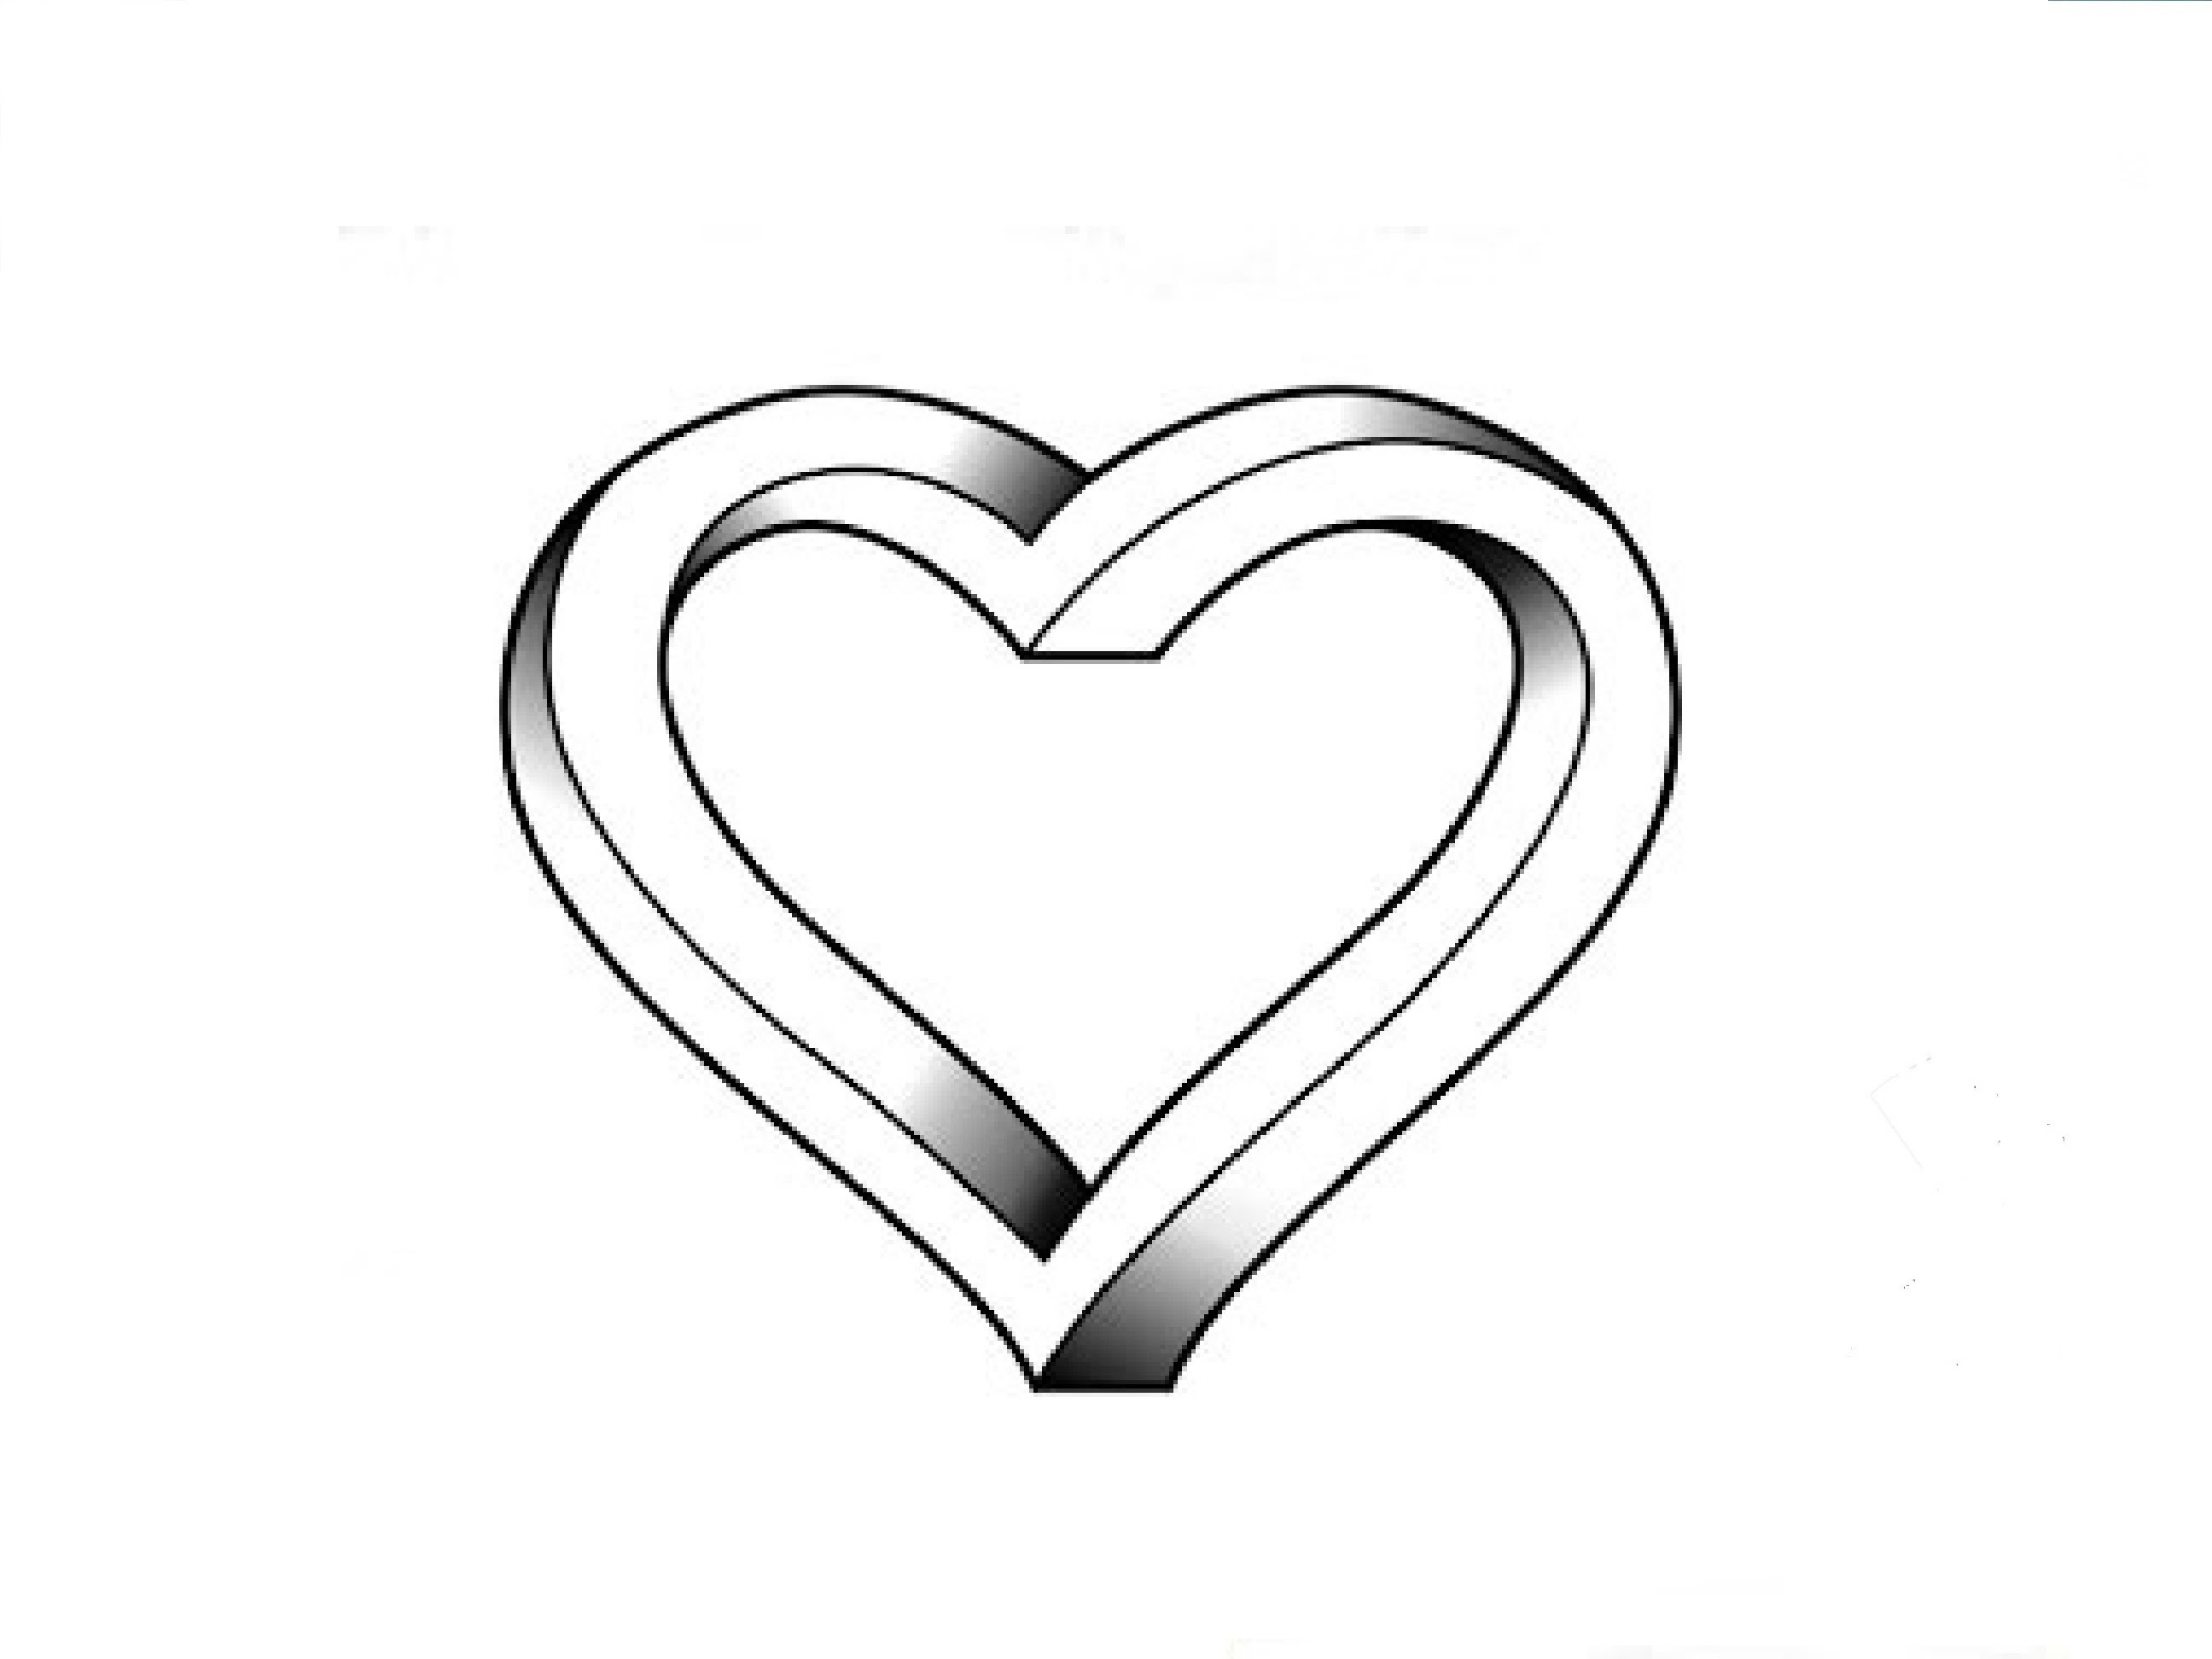 Line Art Love Heart : Line drawing heart clipart best